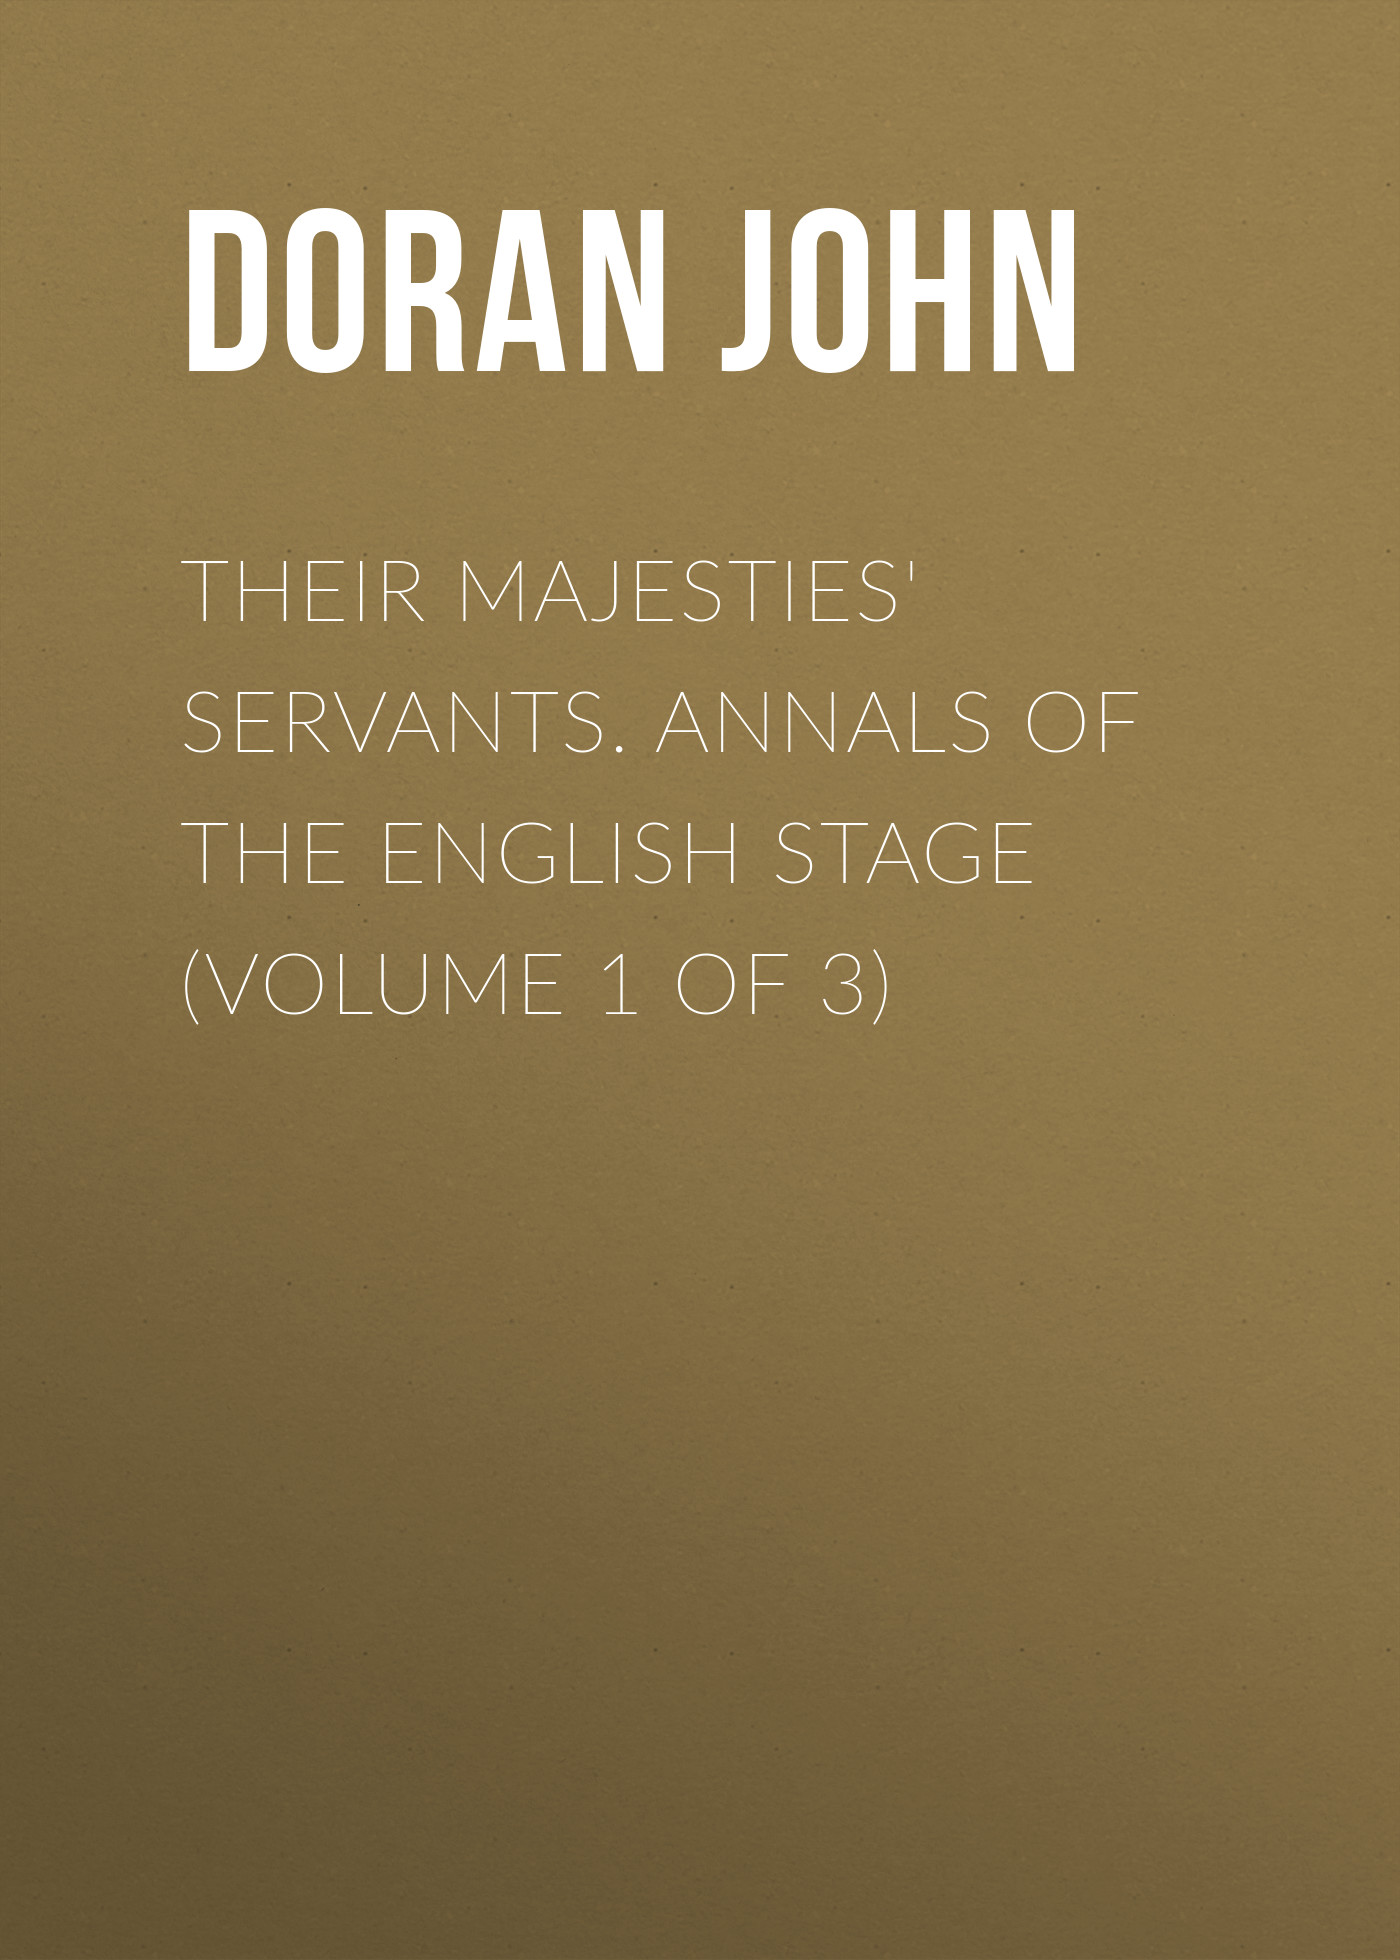 Doran John Their Majesties' Servants. Annals of the English Stage (Volume 1 of 3)